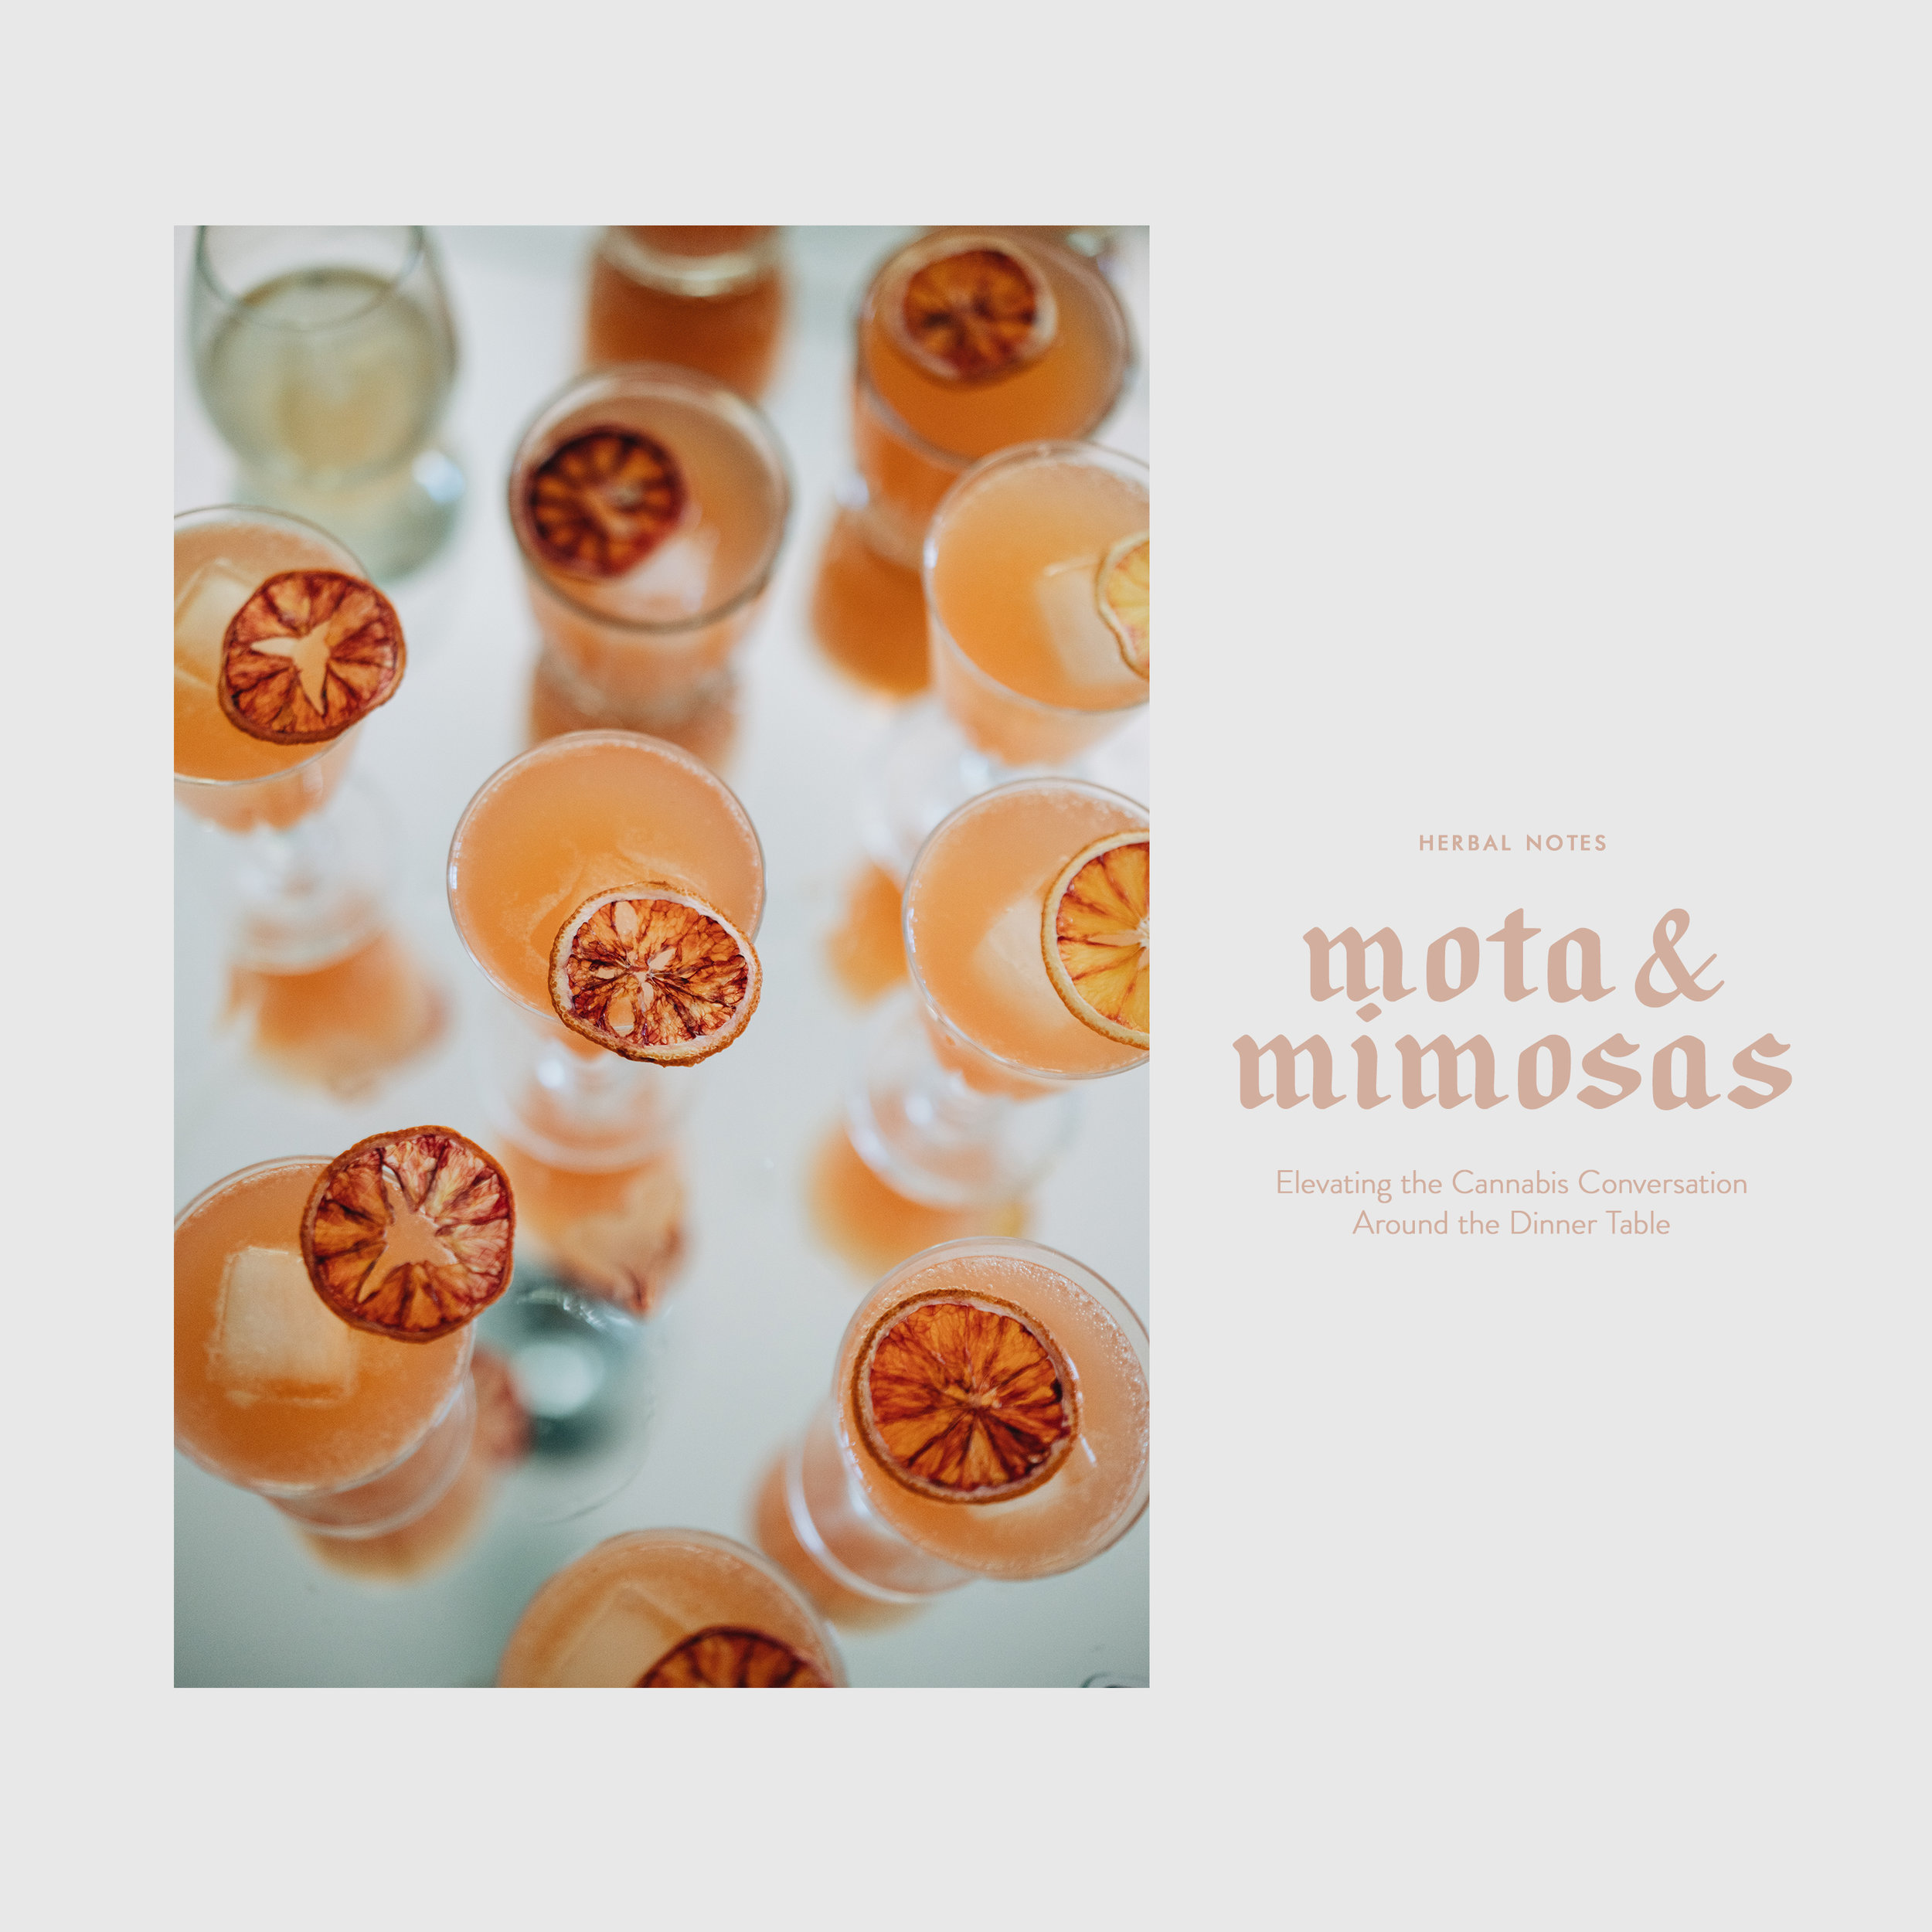 mota & mimosa herbal notes cannabis brunch.jpg